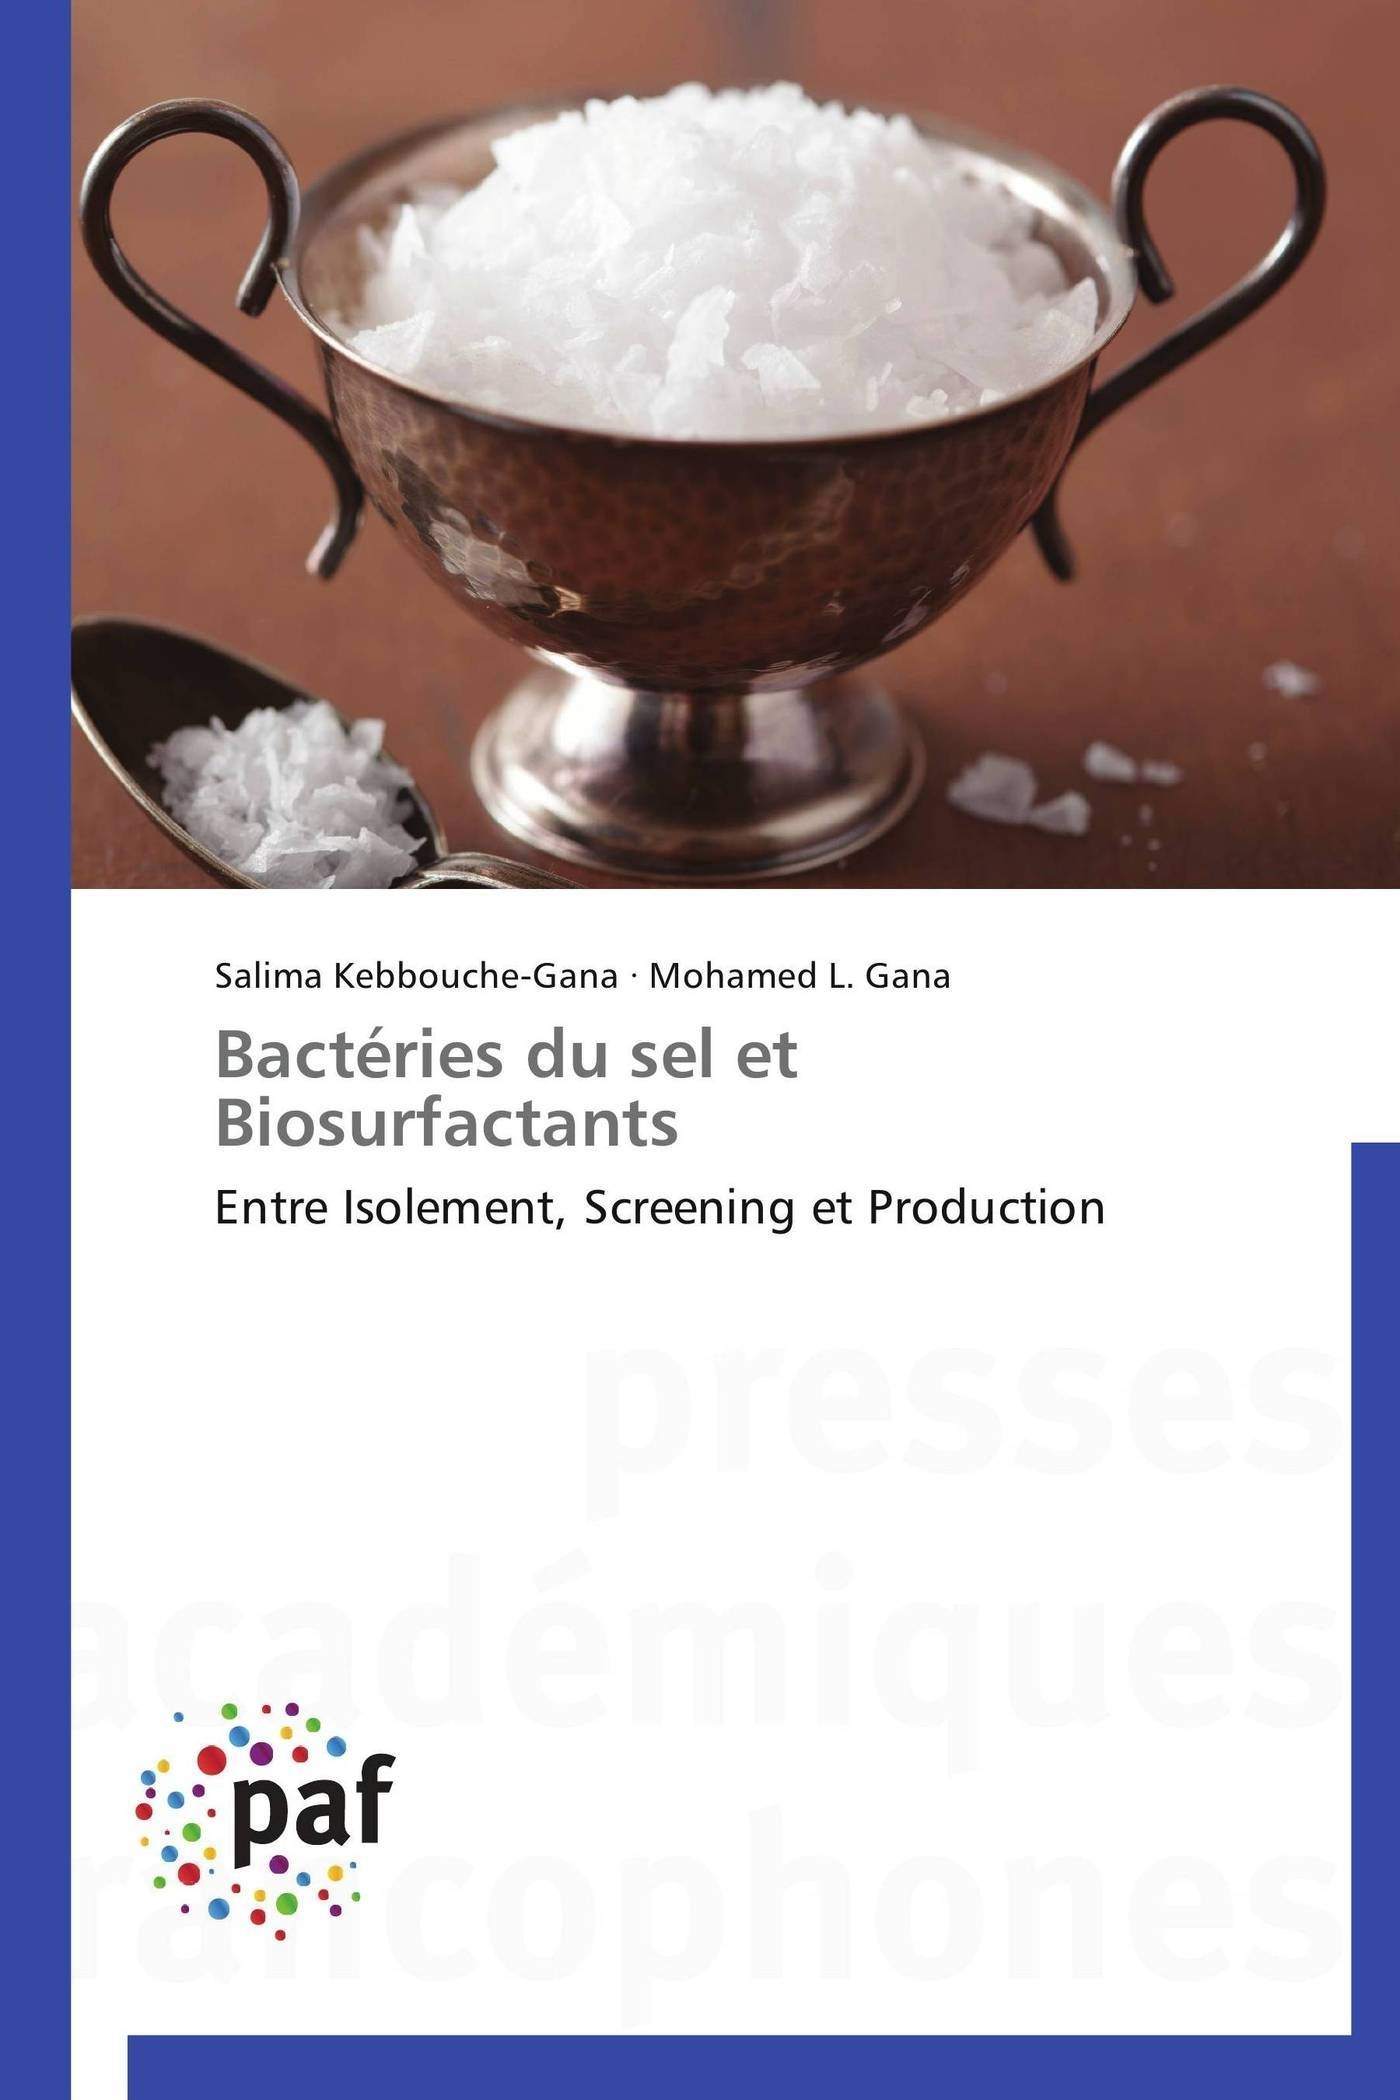 BACTERIES DU SEL ET BIOSURFACTANTS